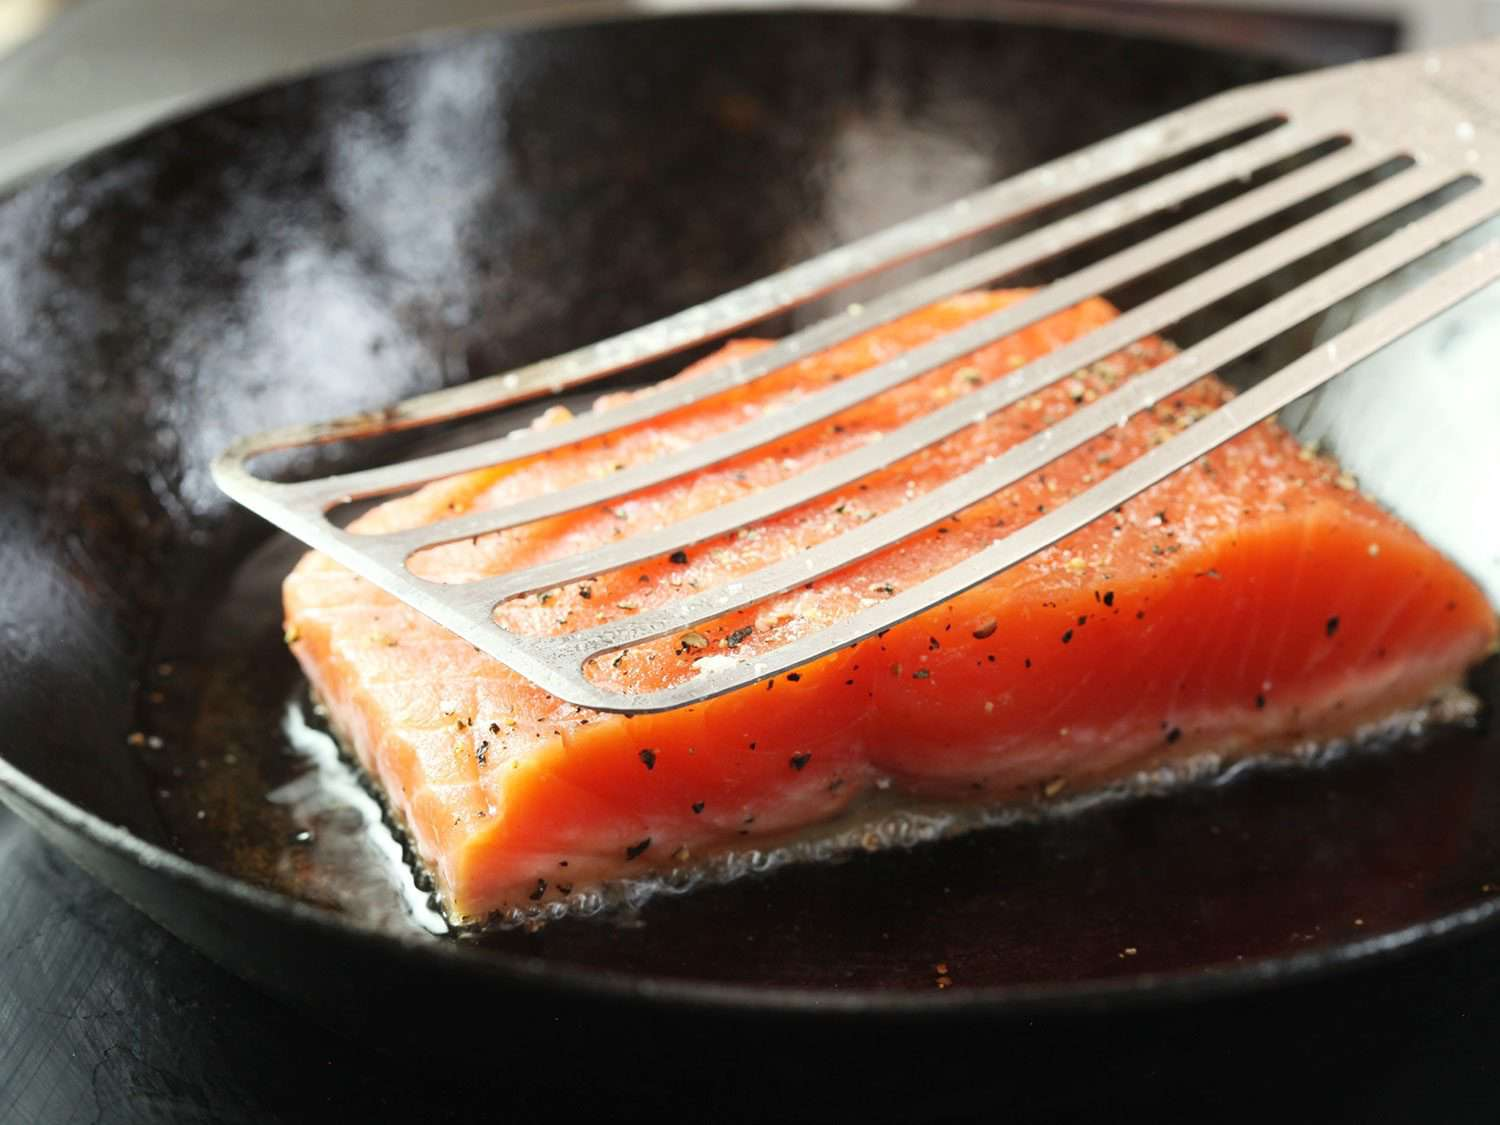 Close-up of a flexible slotted spatula pressing down on a salmon fillet in a skillet